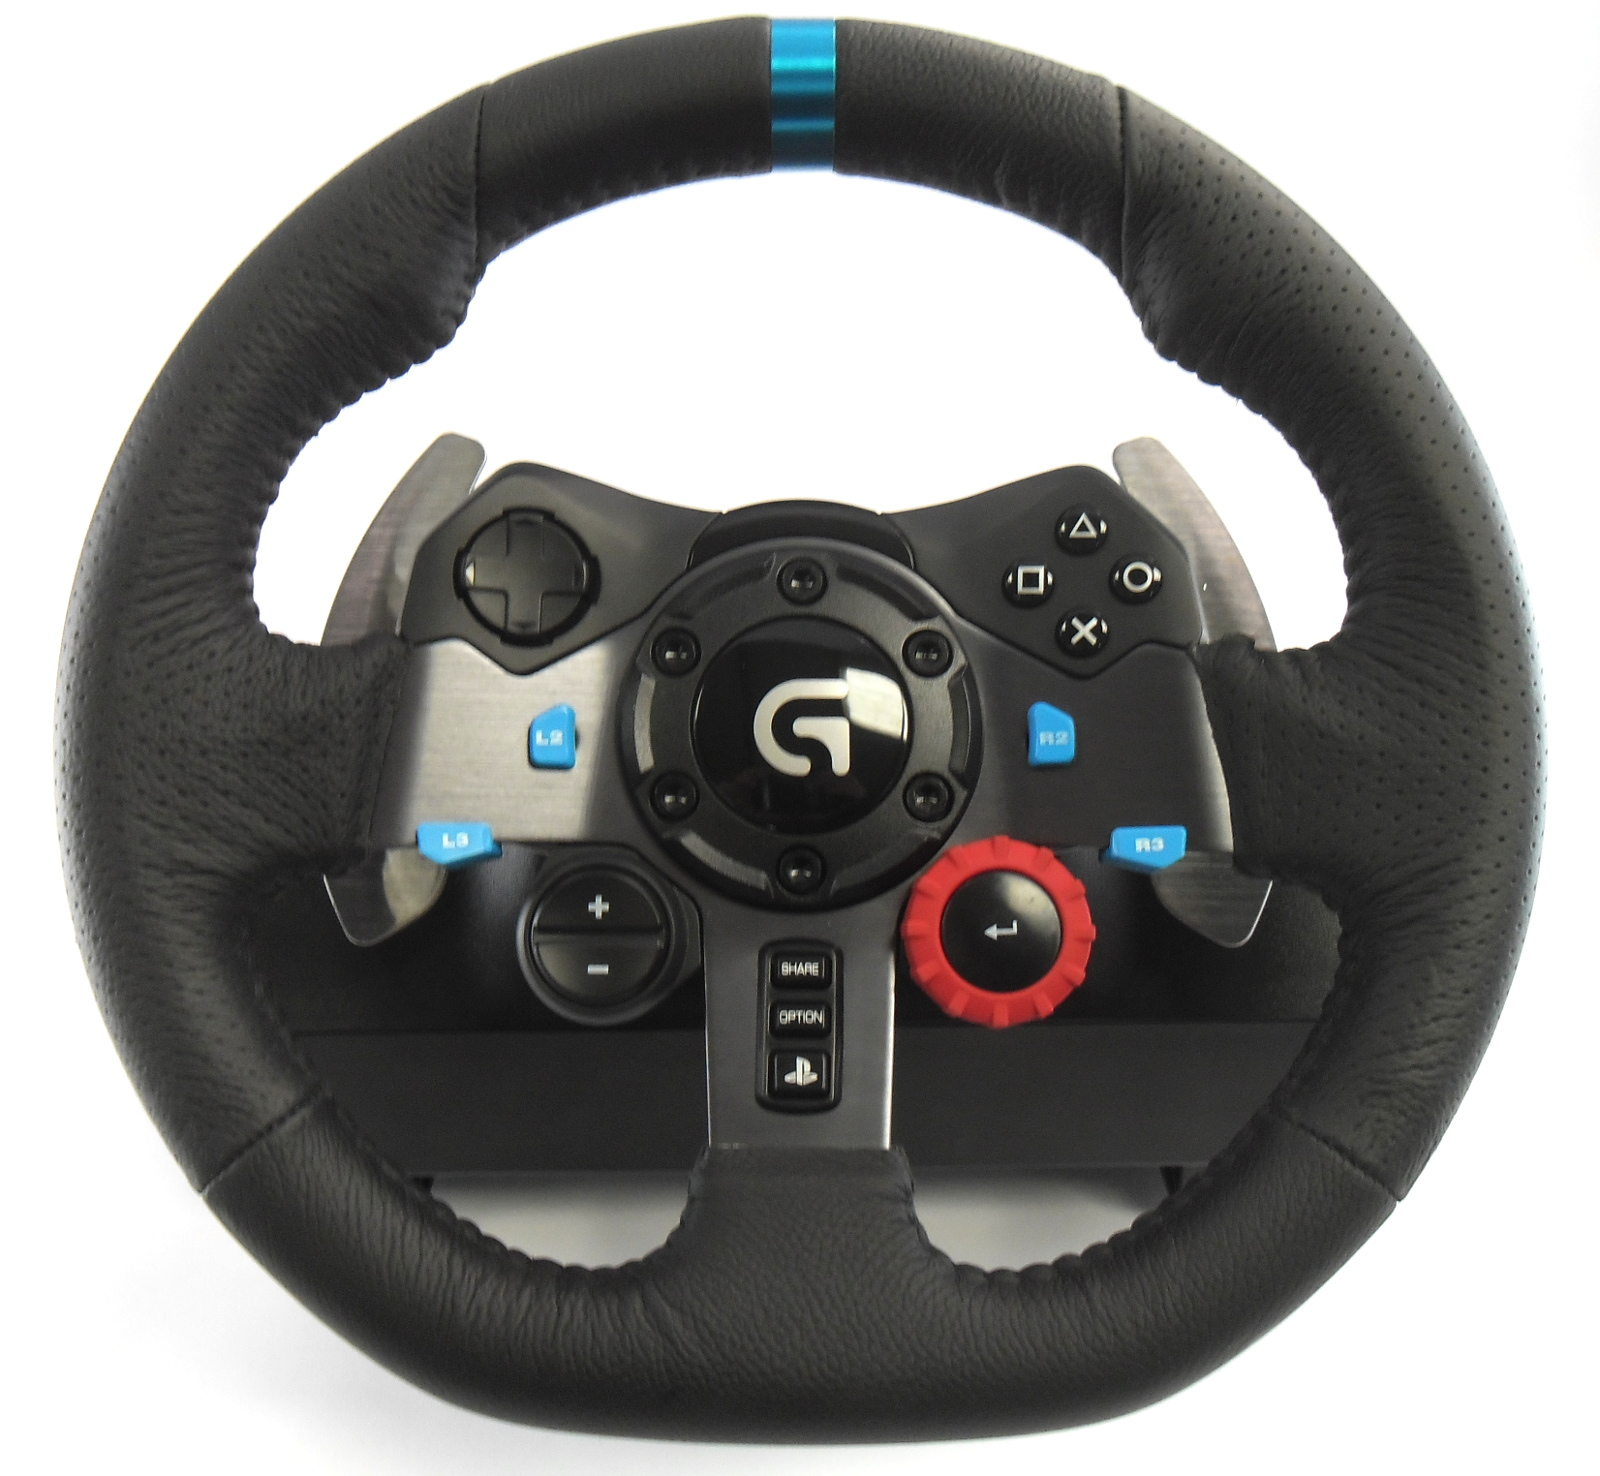 /Logitech G29 Driving Force Racing Steering Wheel /f PS3 ...